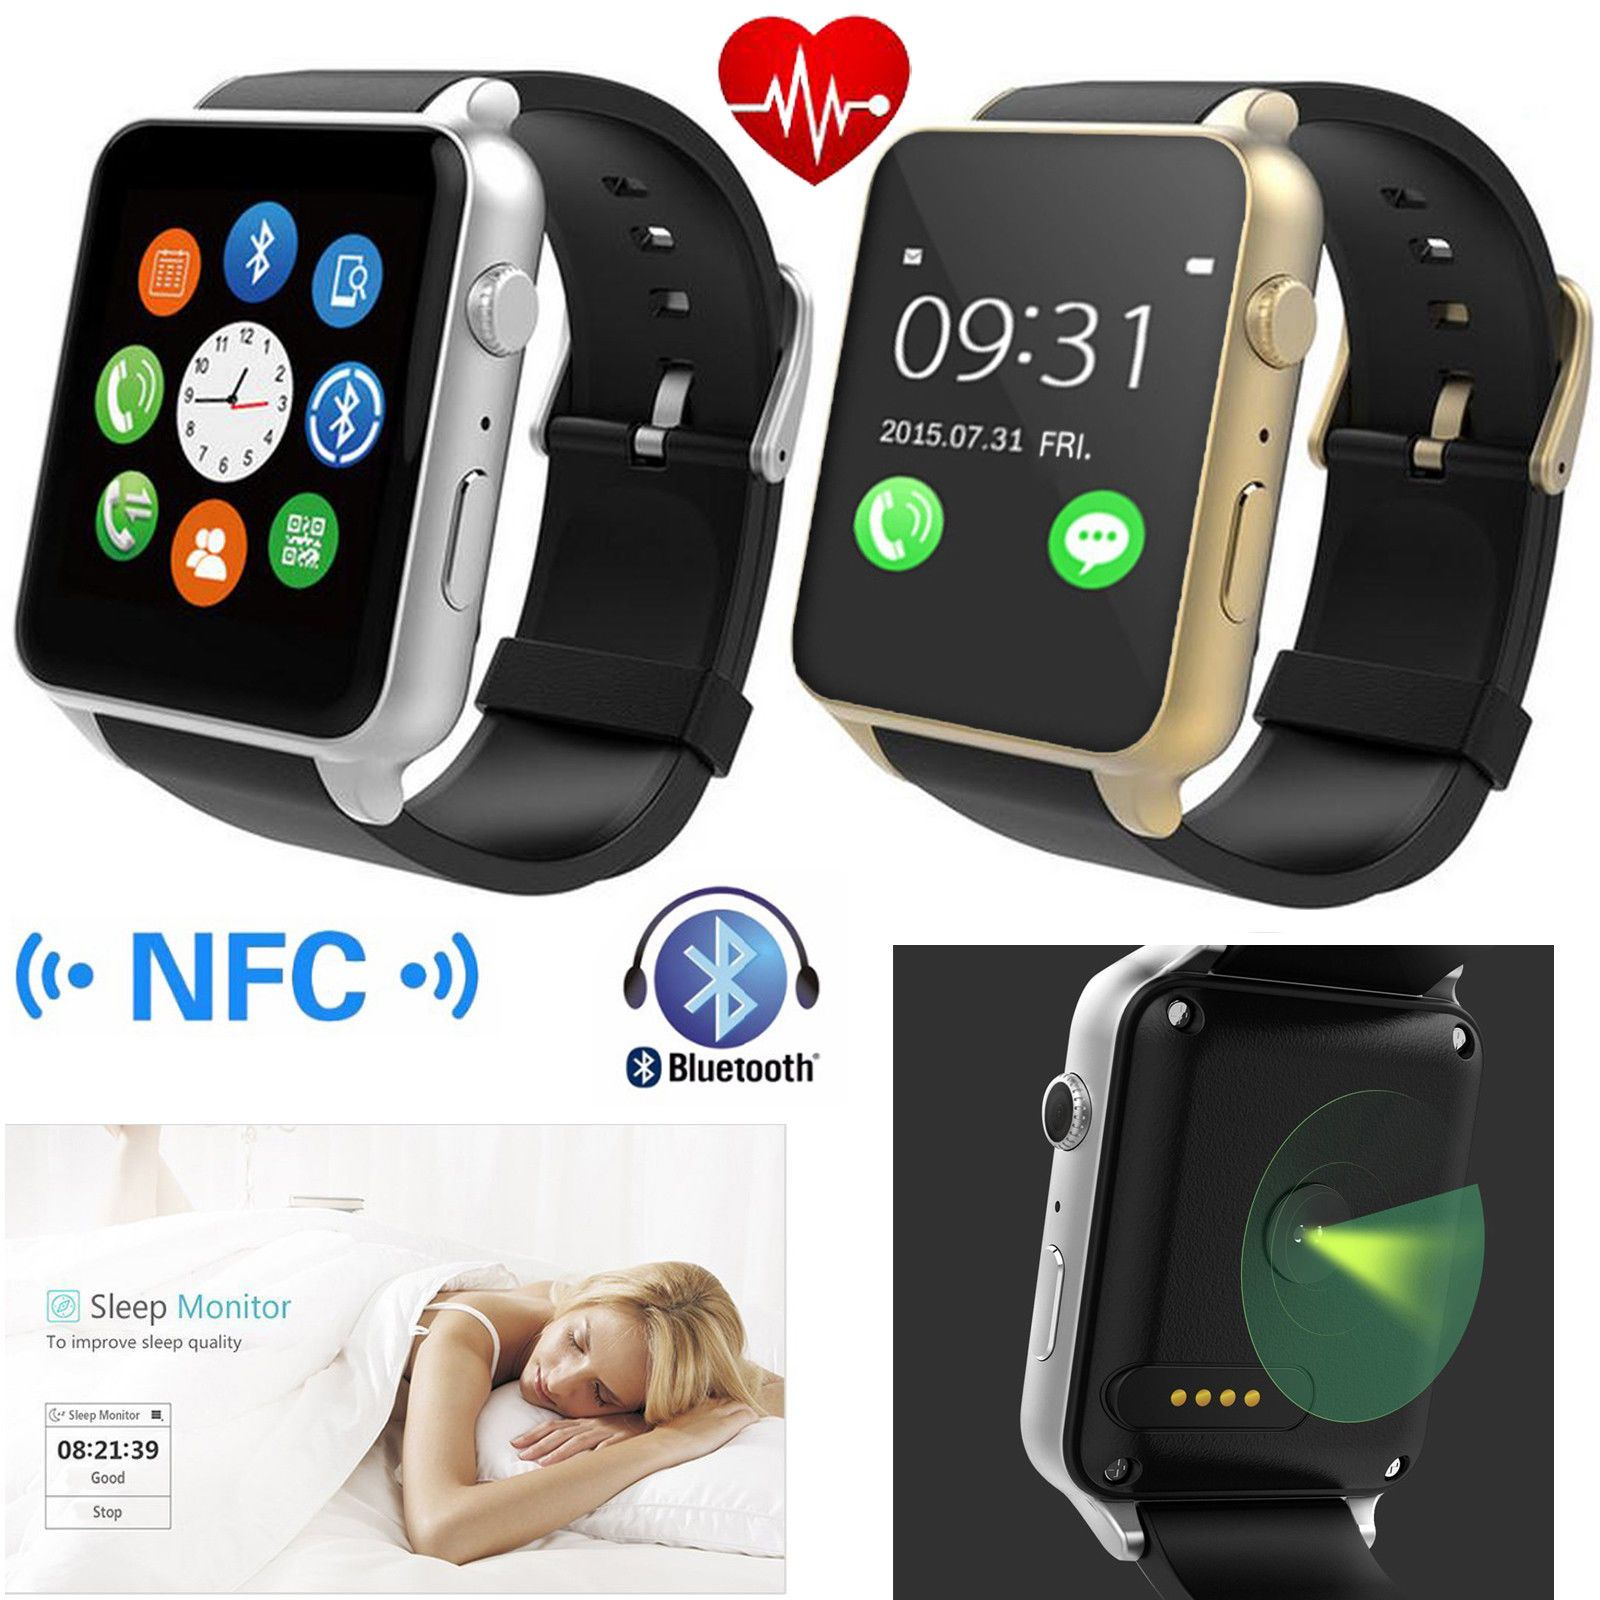 Bluetooth Smart Watch Heart Rate Monitor For Samsung iPhone LG HTC Huawei Nokia